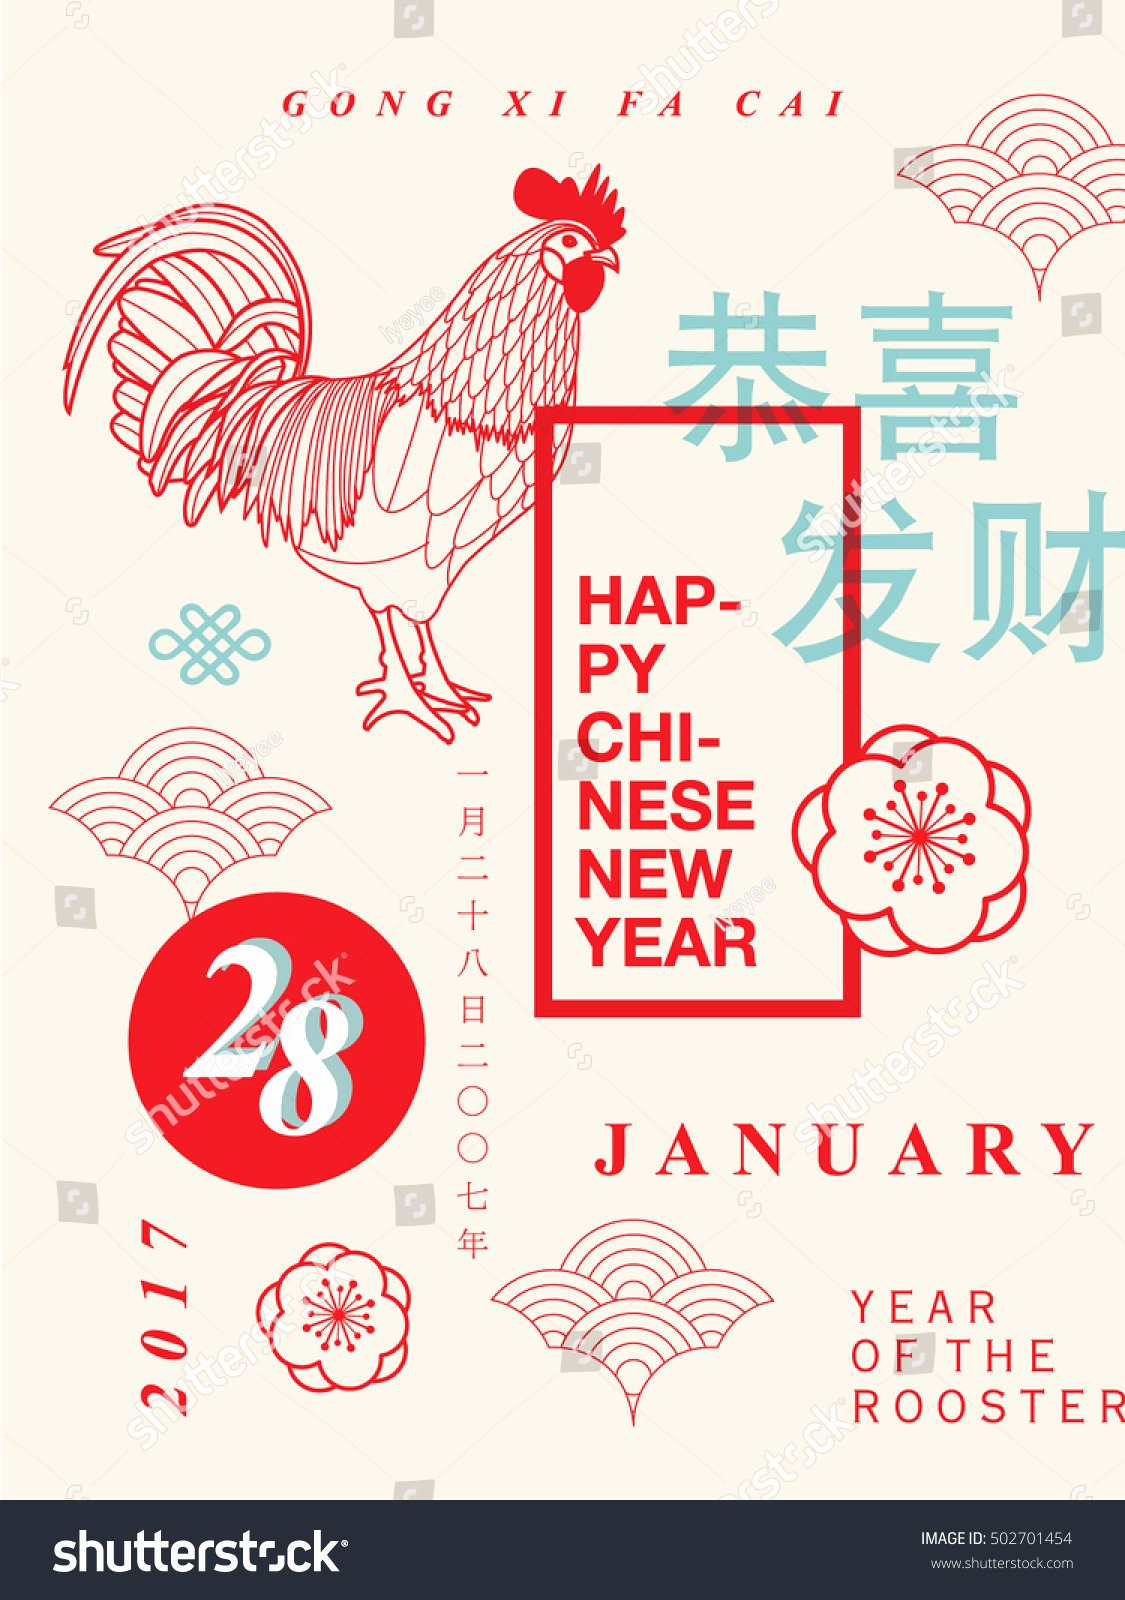 New Year Card Template Beautiful Chinese New Yearyear Rooster Greeting Card Stock Vector